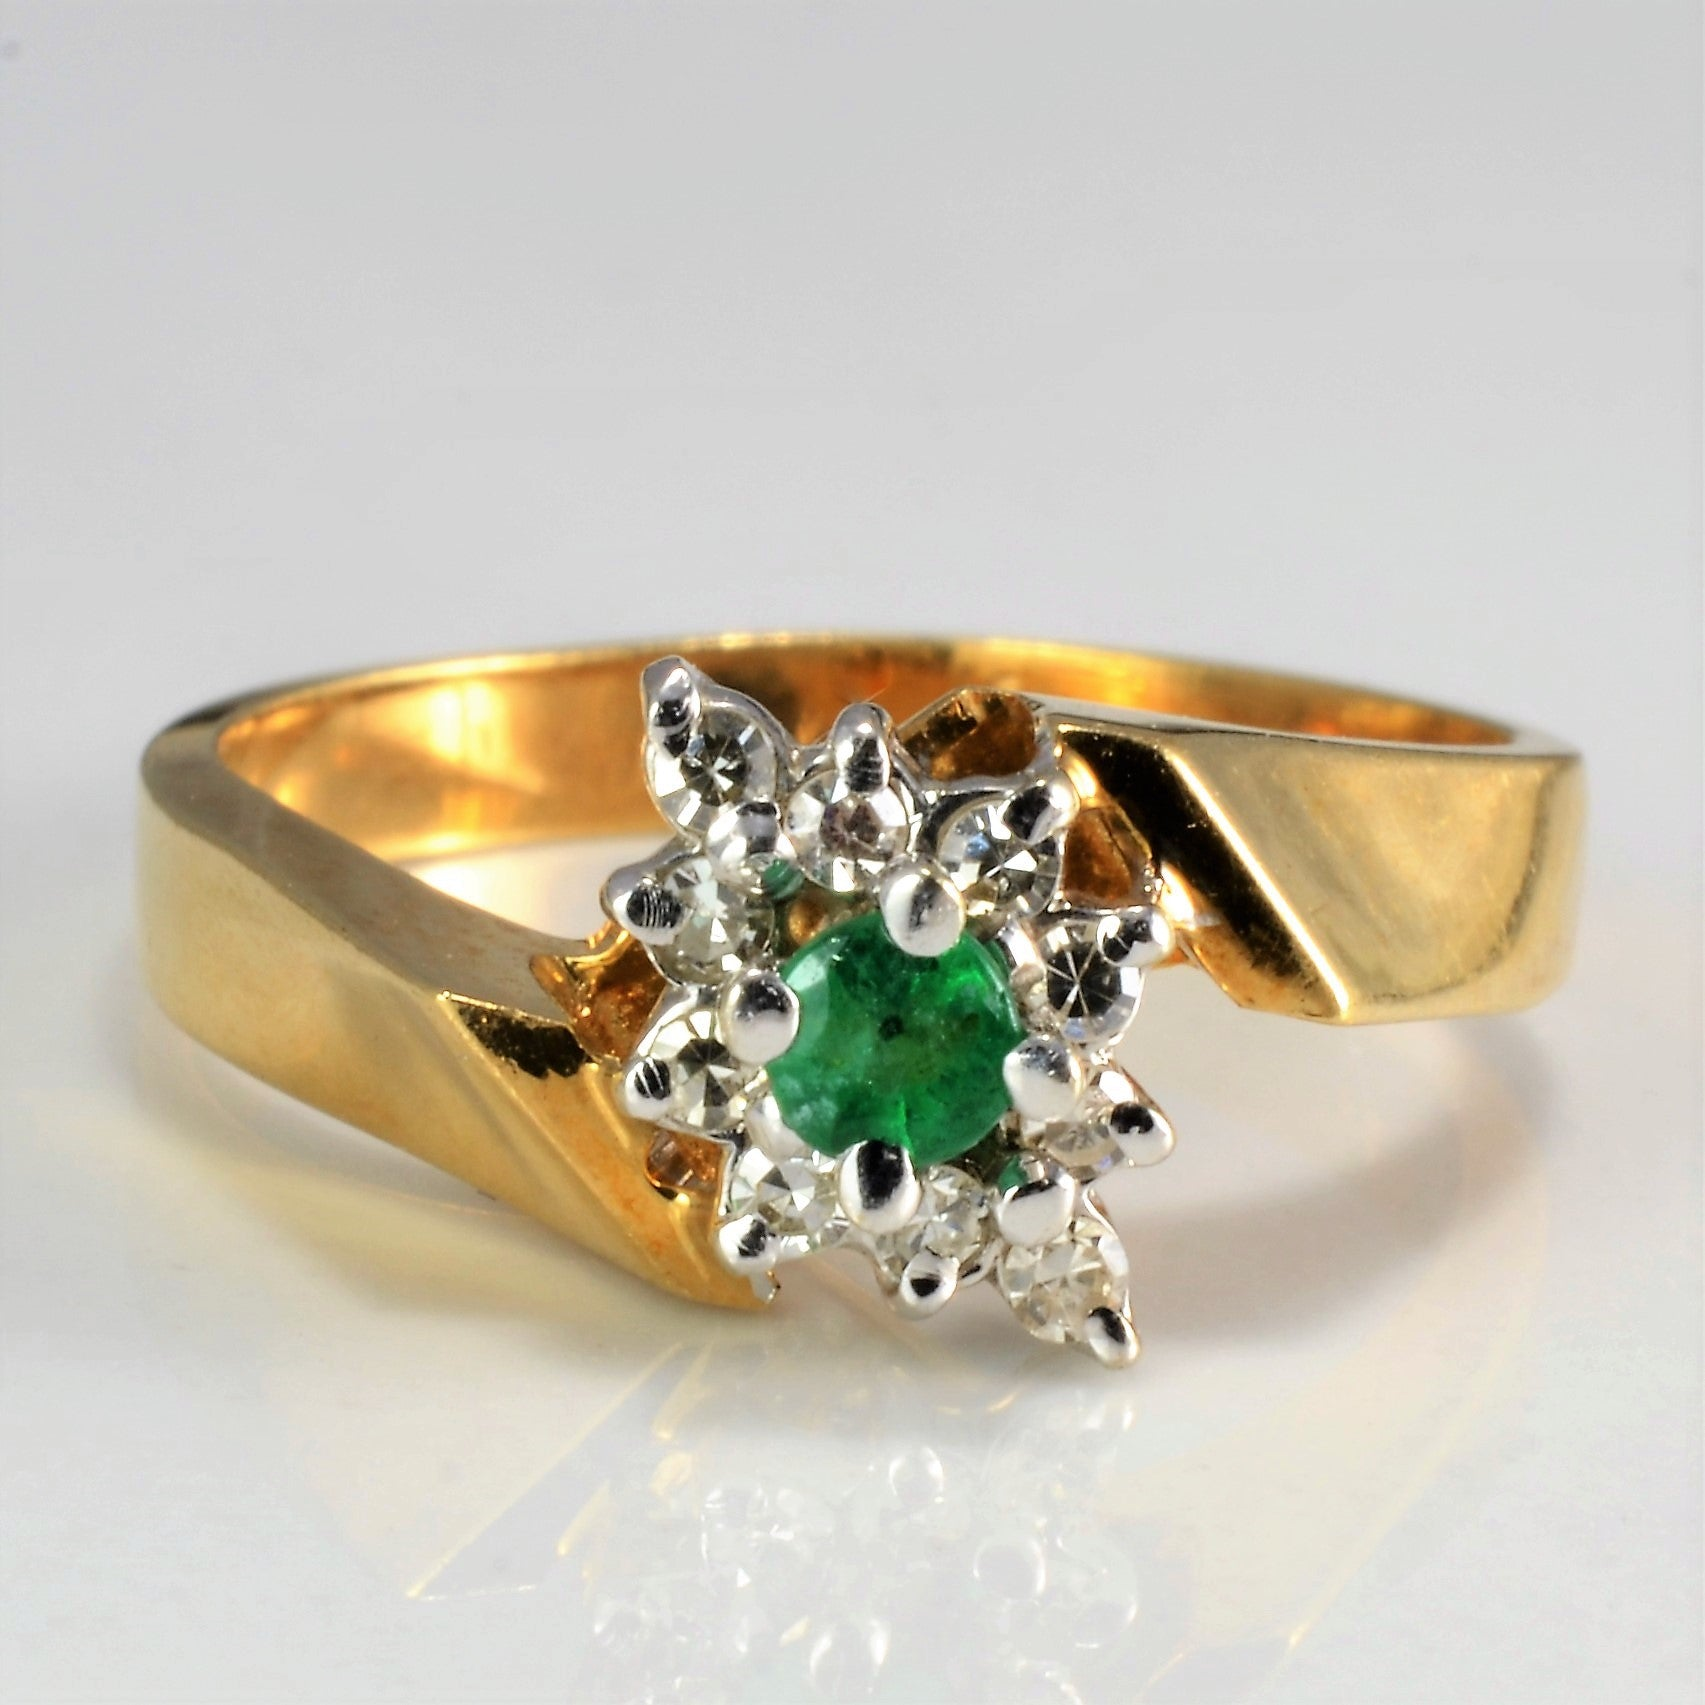 Bypass Cluster Diamond & Emerald Ring | 0.14 ctw, SZ 6.5 |